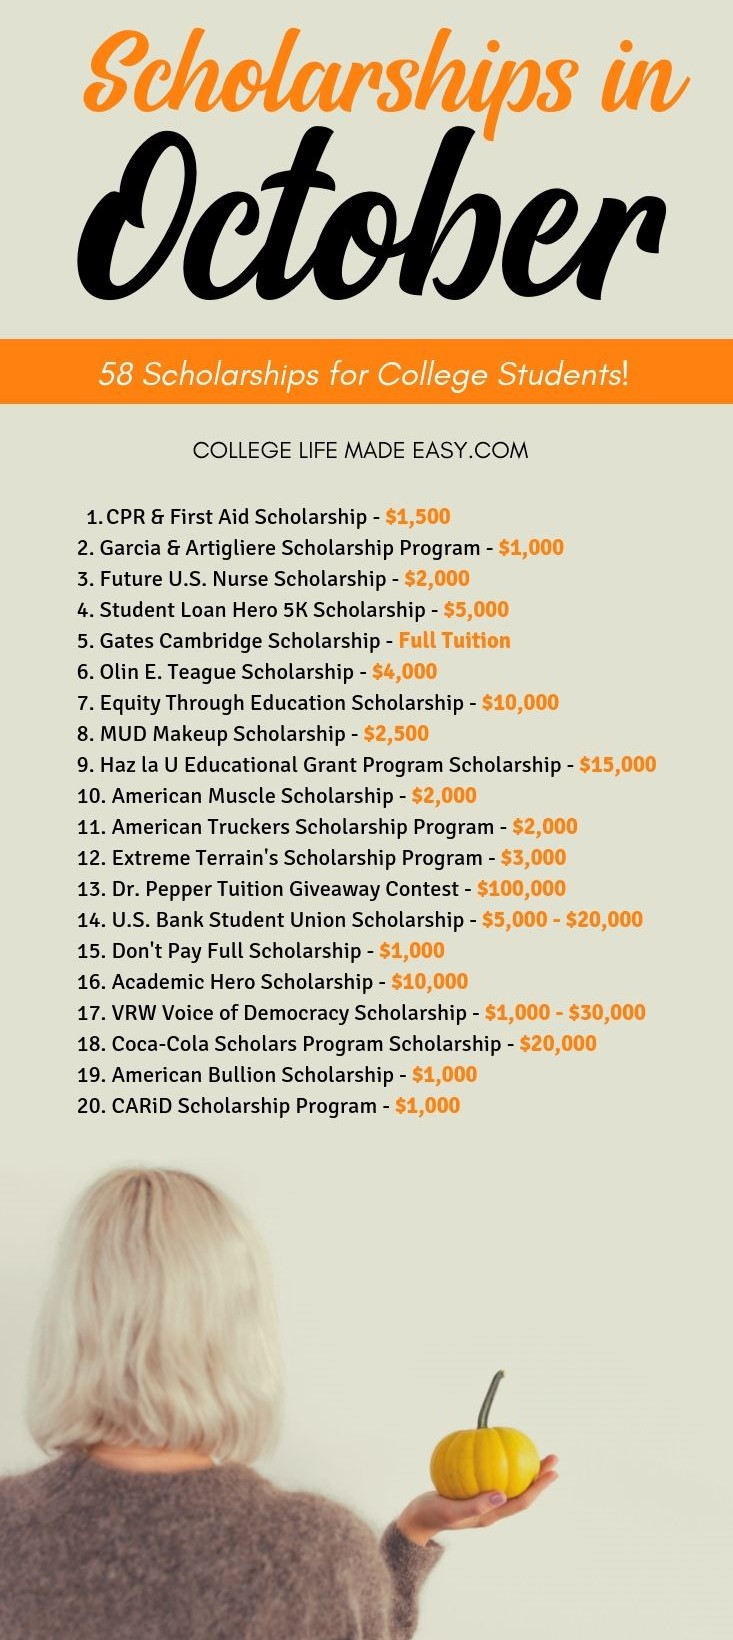 scholarships in October infographic